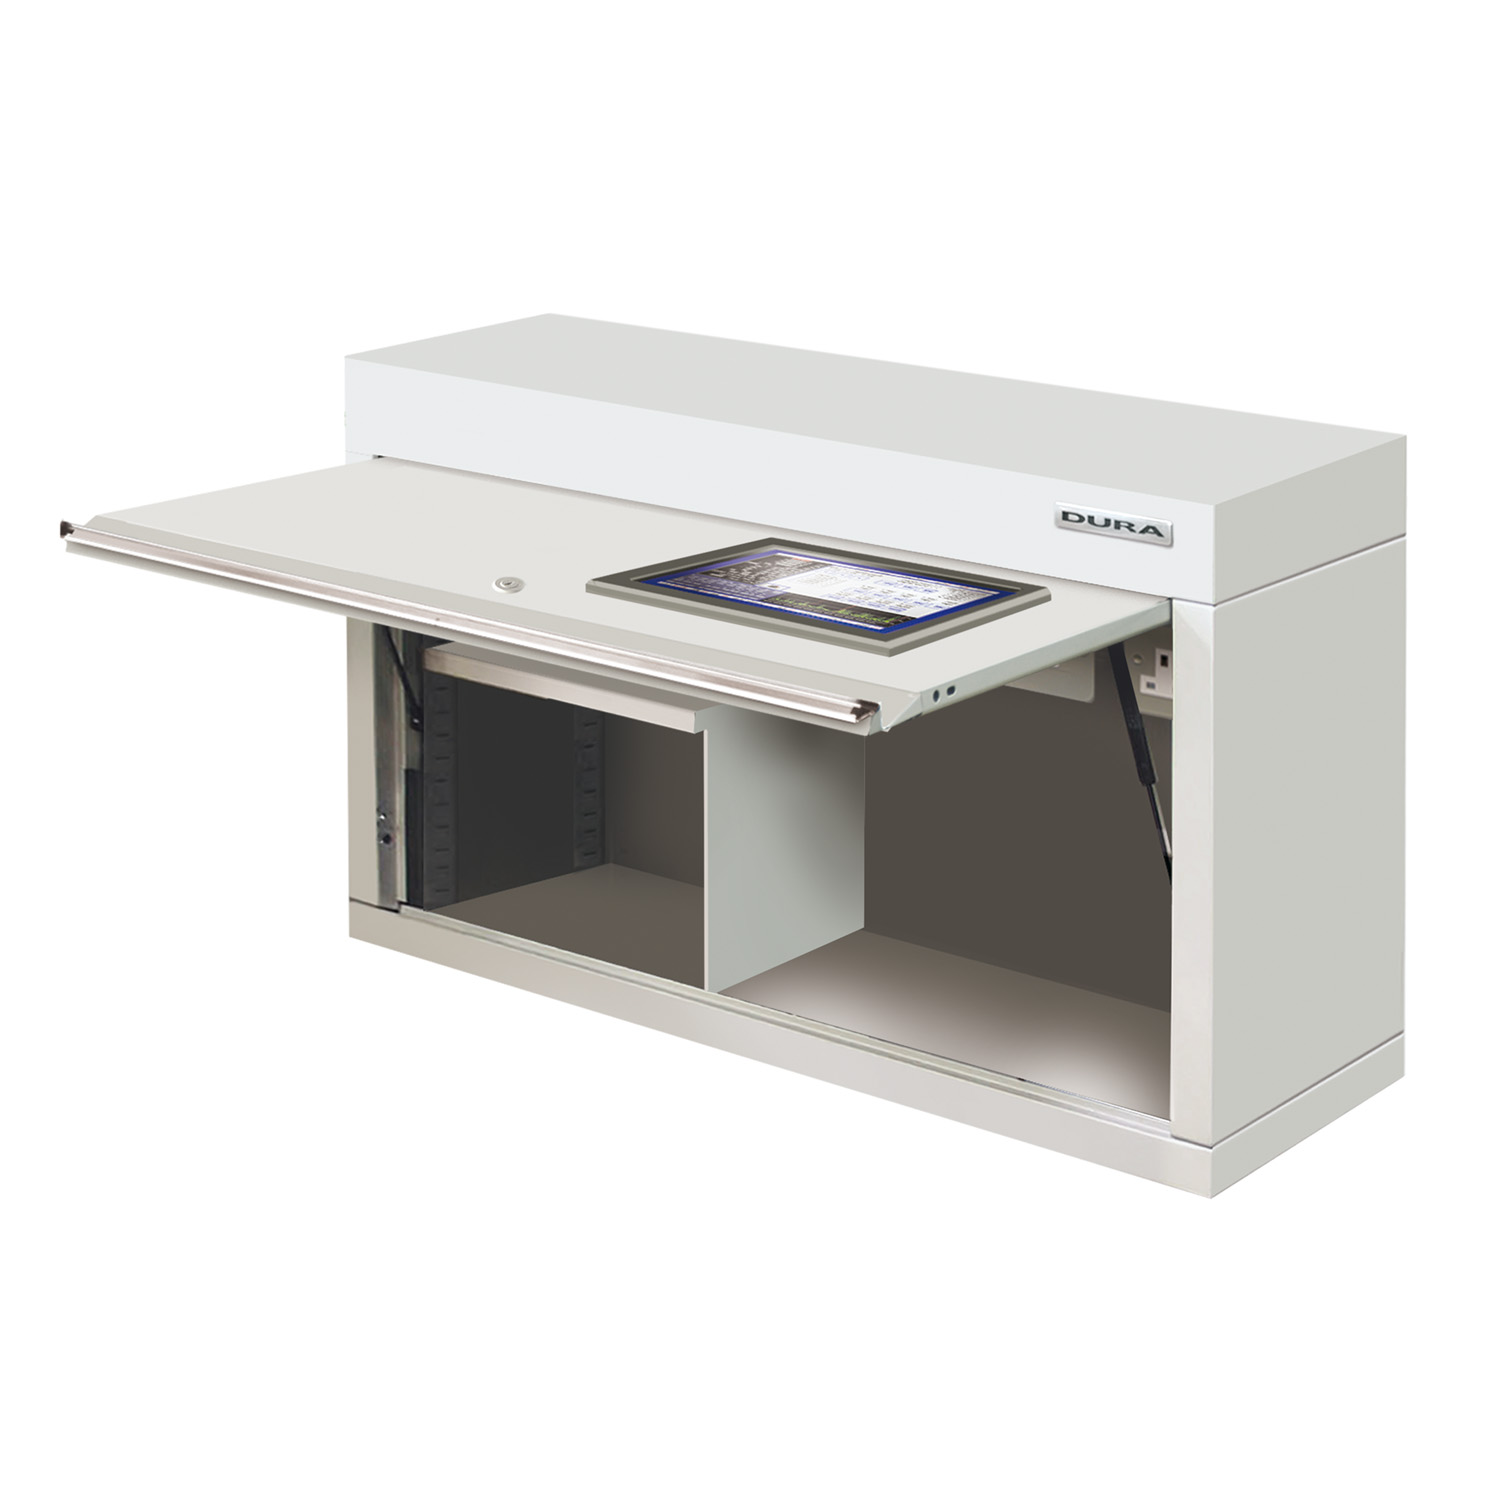 Wall cabinet with VDU window (1200mm)